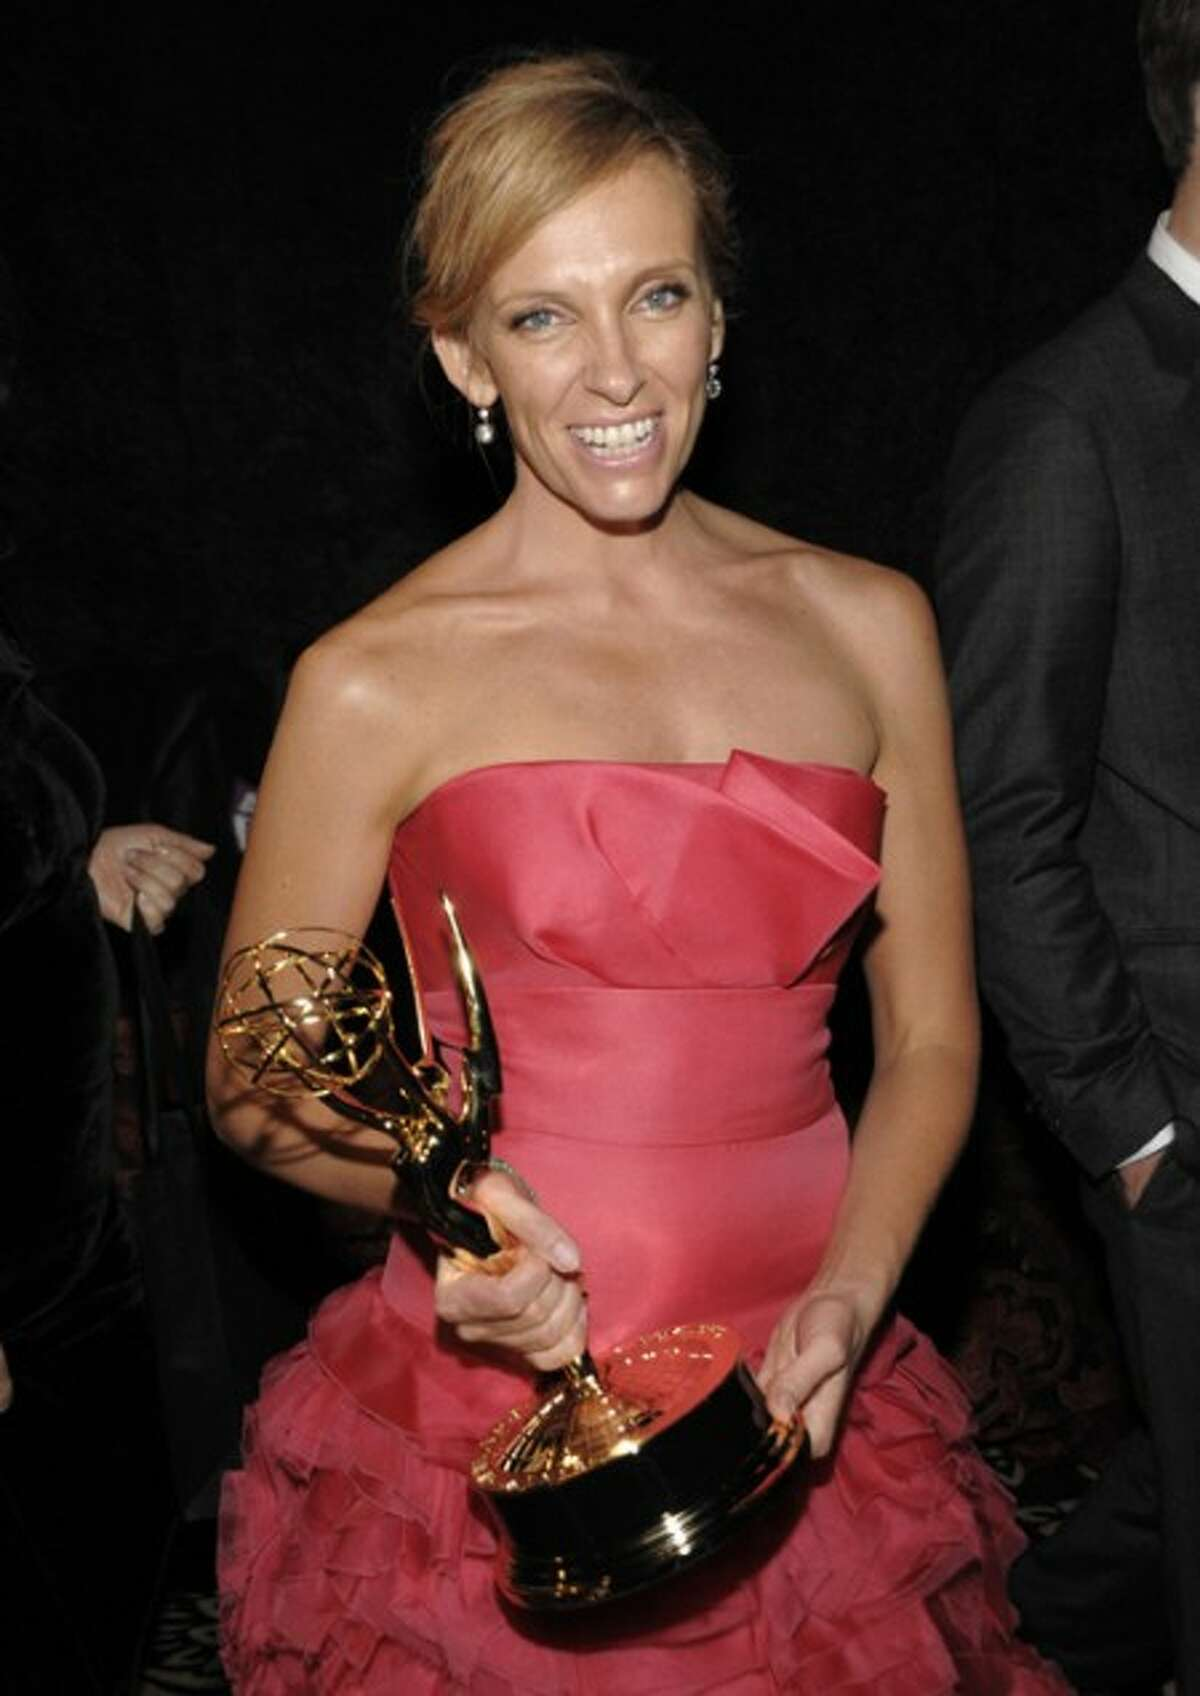 Actress Toni Collette arrives at the HBO Emmy Party in West Hollywood, Calif. on Sunday, Sept. 20. Collette won an Emmy earlier in the evening for best actress in a comedy series. (AP Photo/Dan Steinberg)